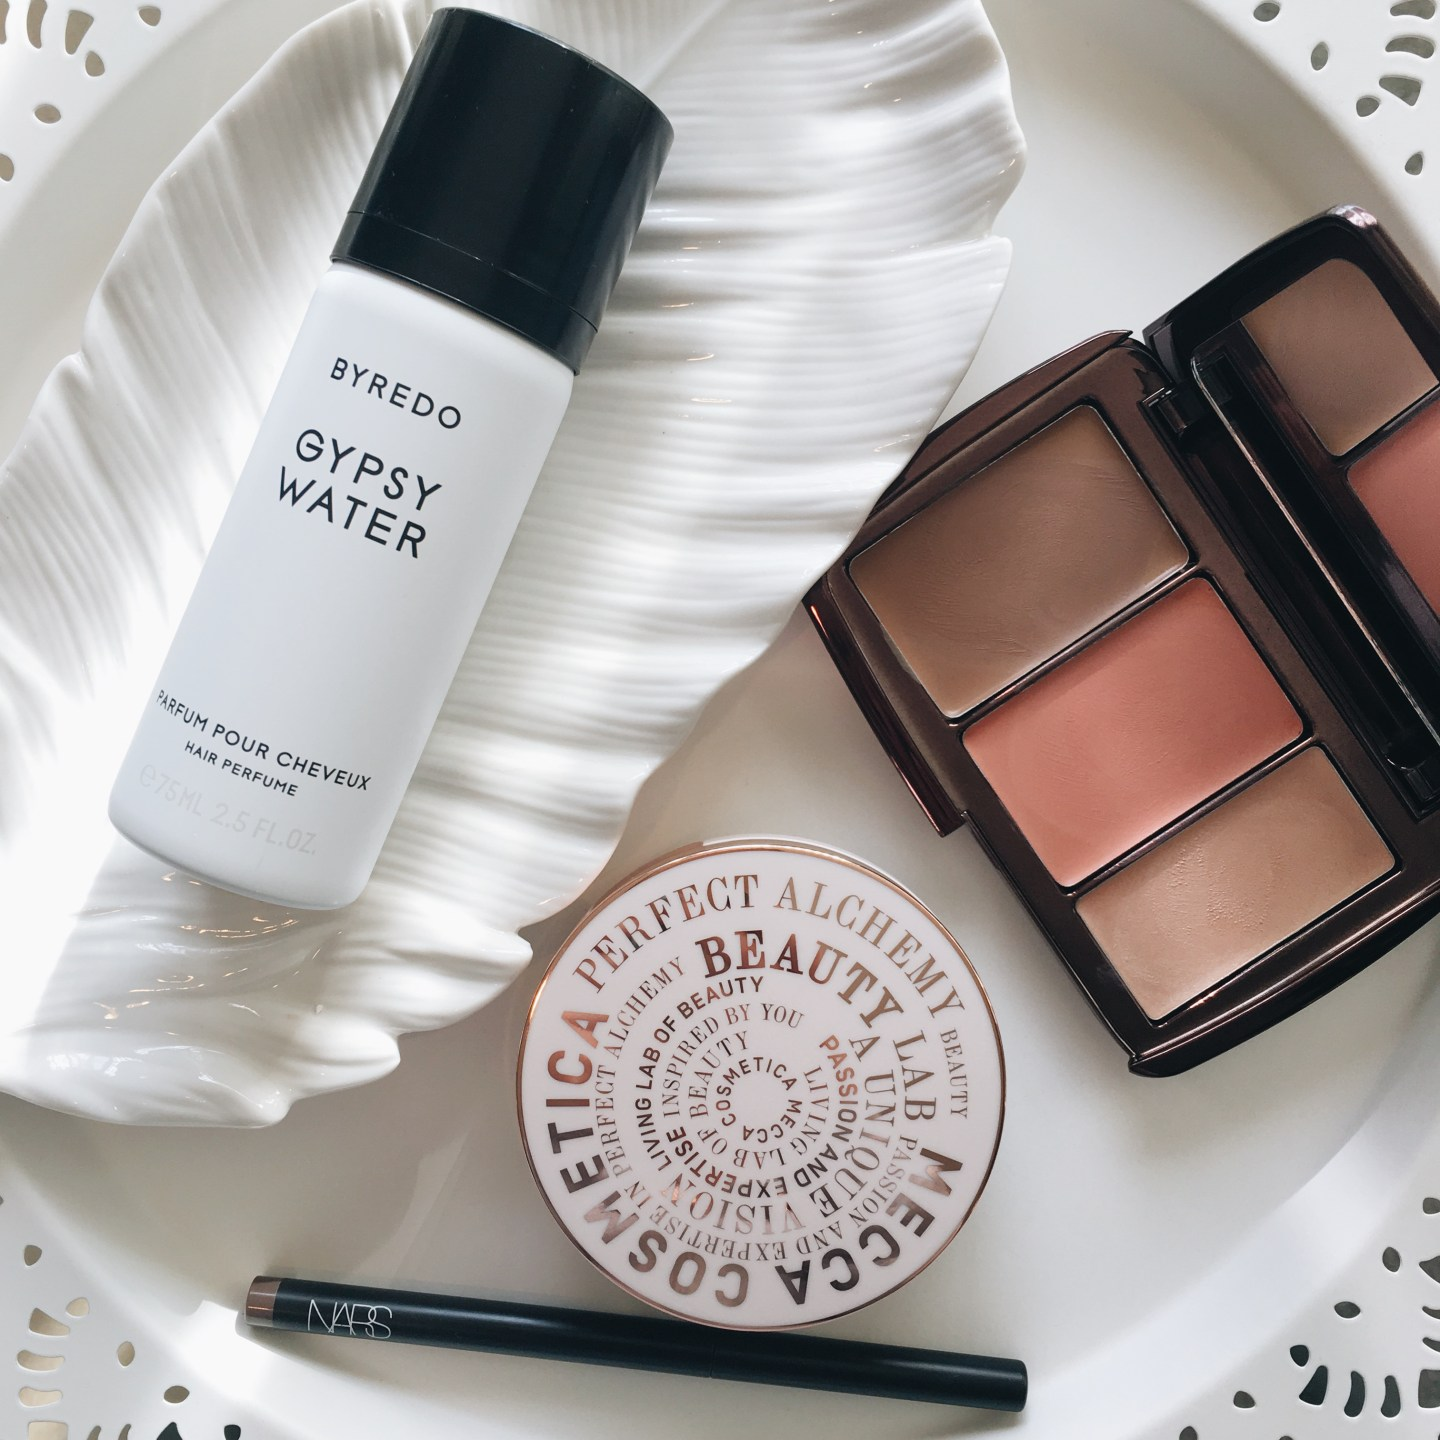 Byredo Gypsy Water Hair Perfume | Hourglass Ilume Sheer Colour Trio | Nars Brow Perfector | Mecca Cosmetica In A Great Light Compact